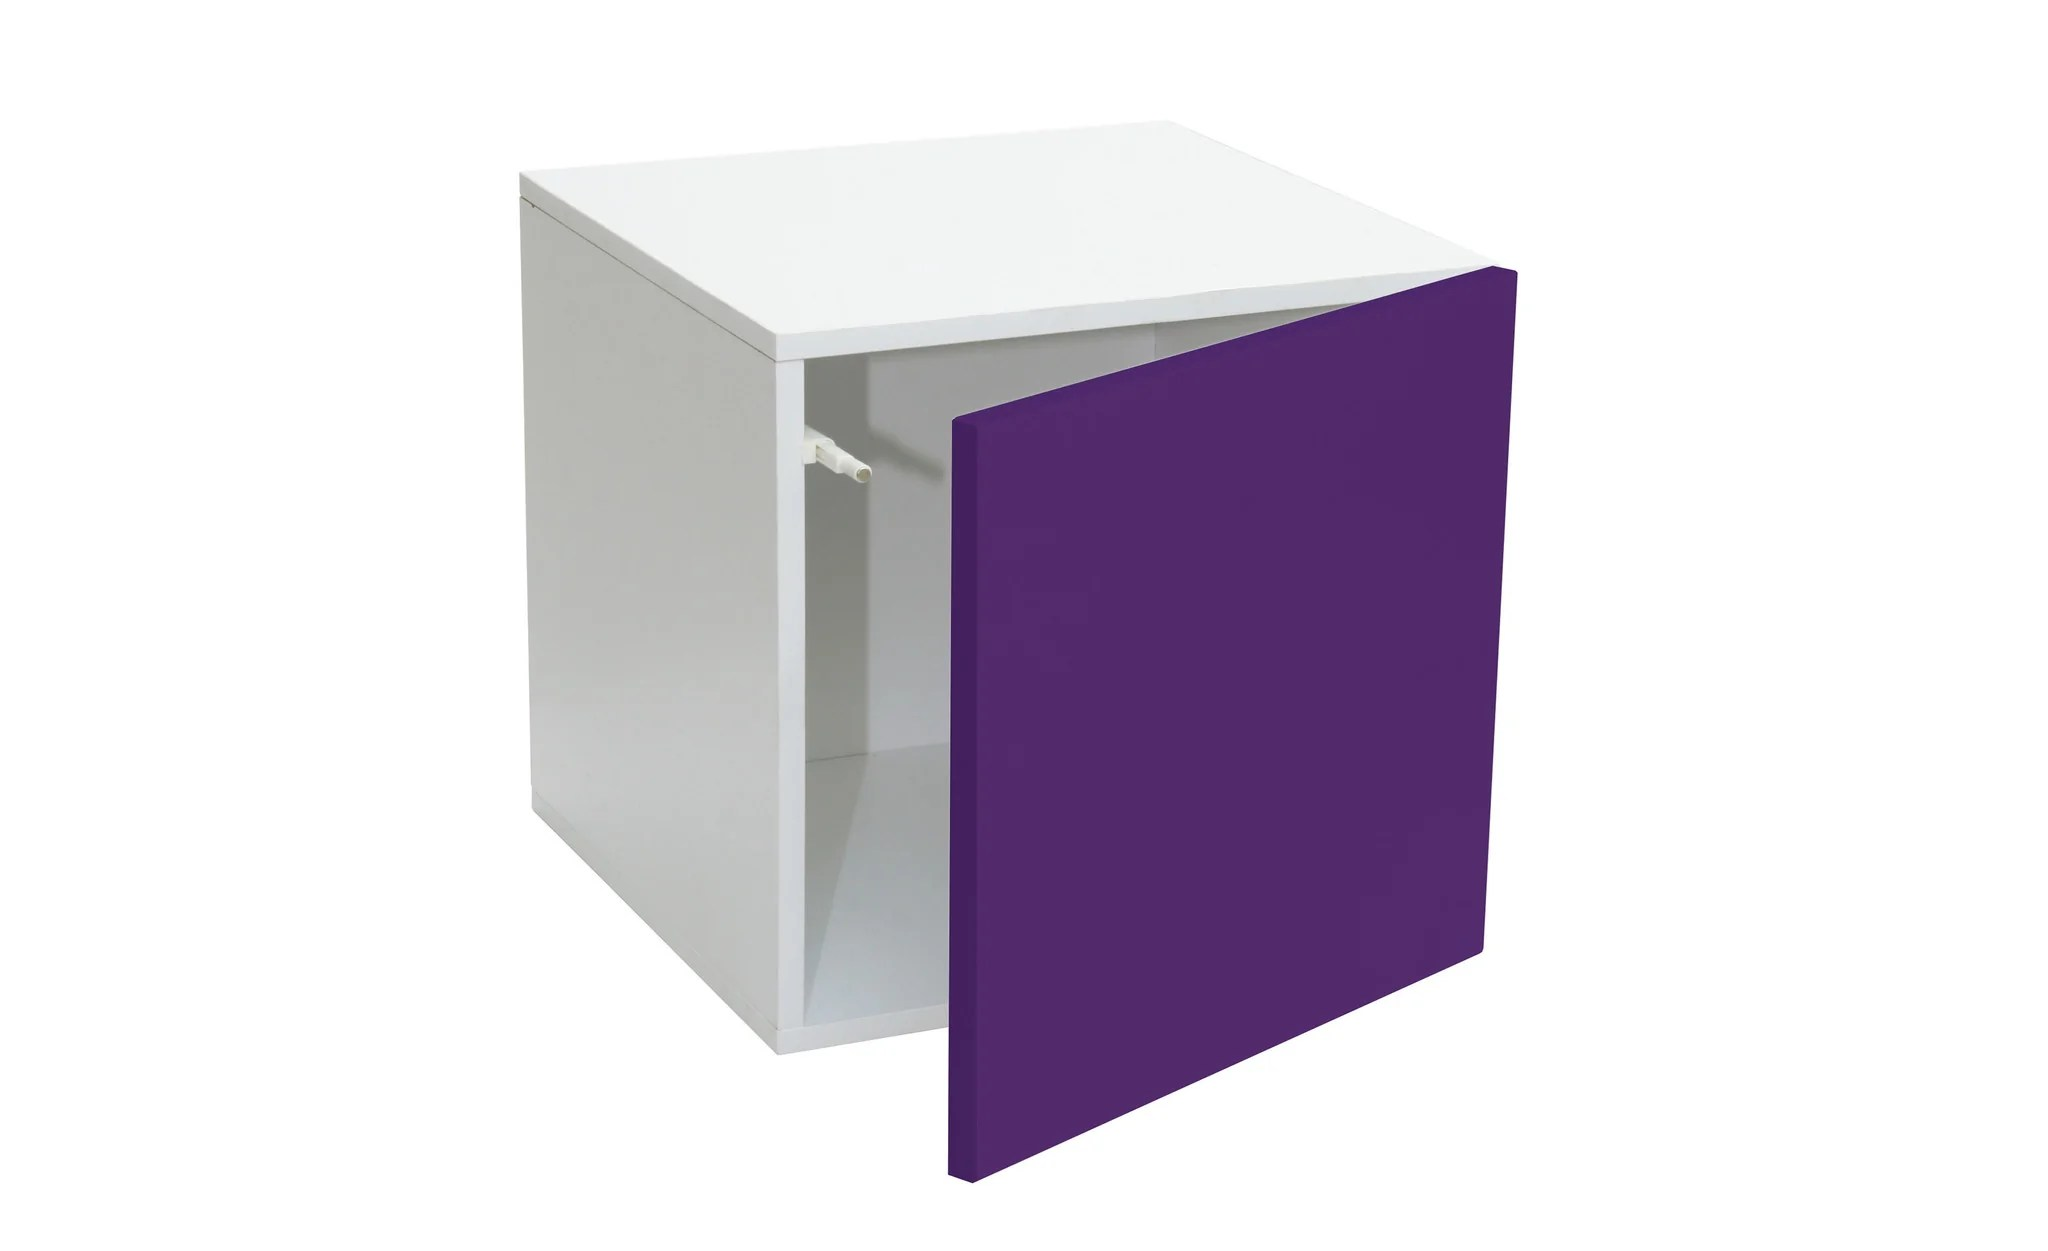 Prana Door Container With Purple High Gloss Finish Push Open System